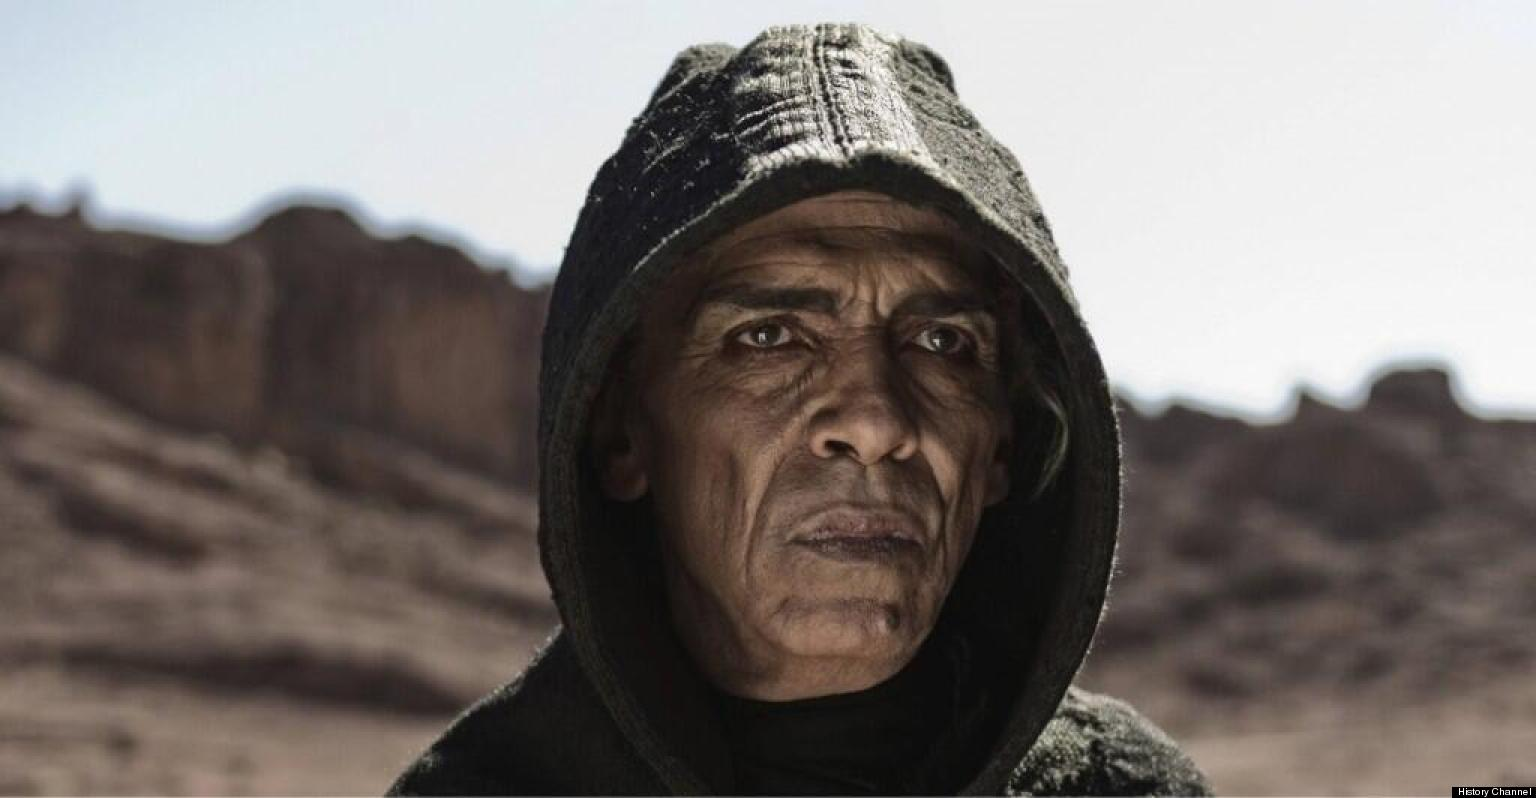 The Bible Devil Looks Like Obama